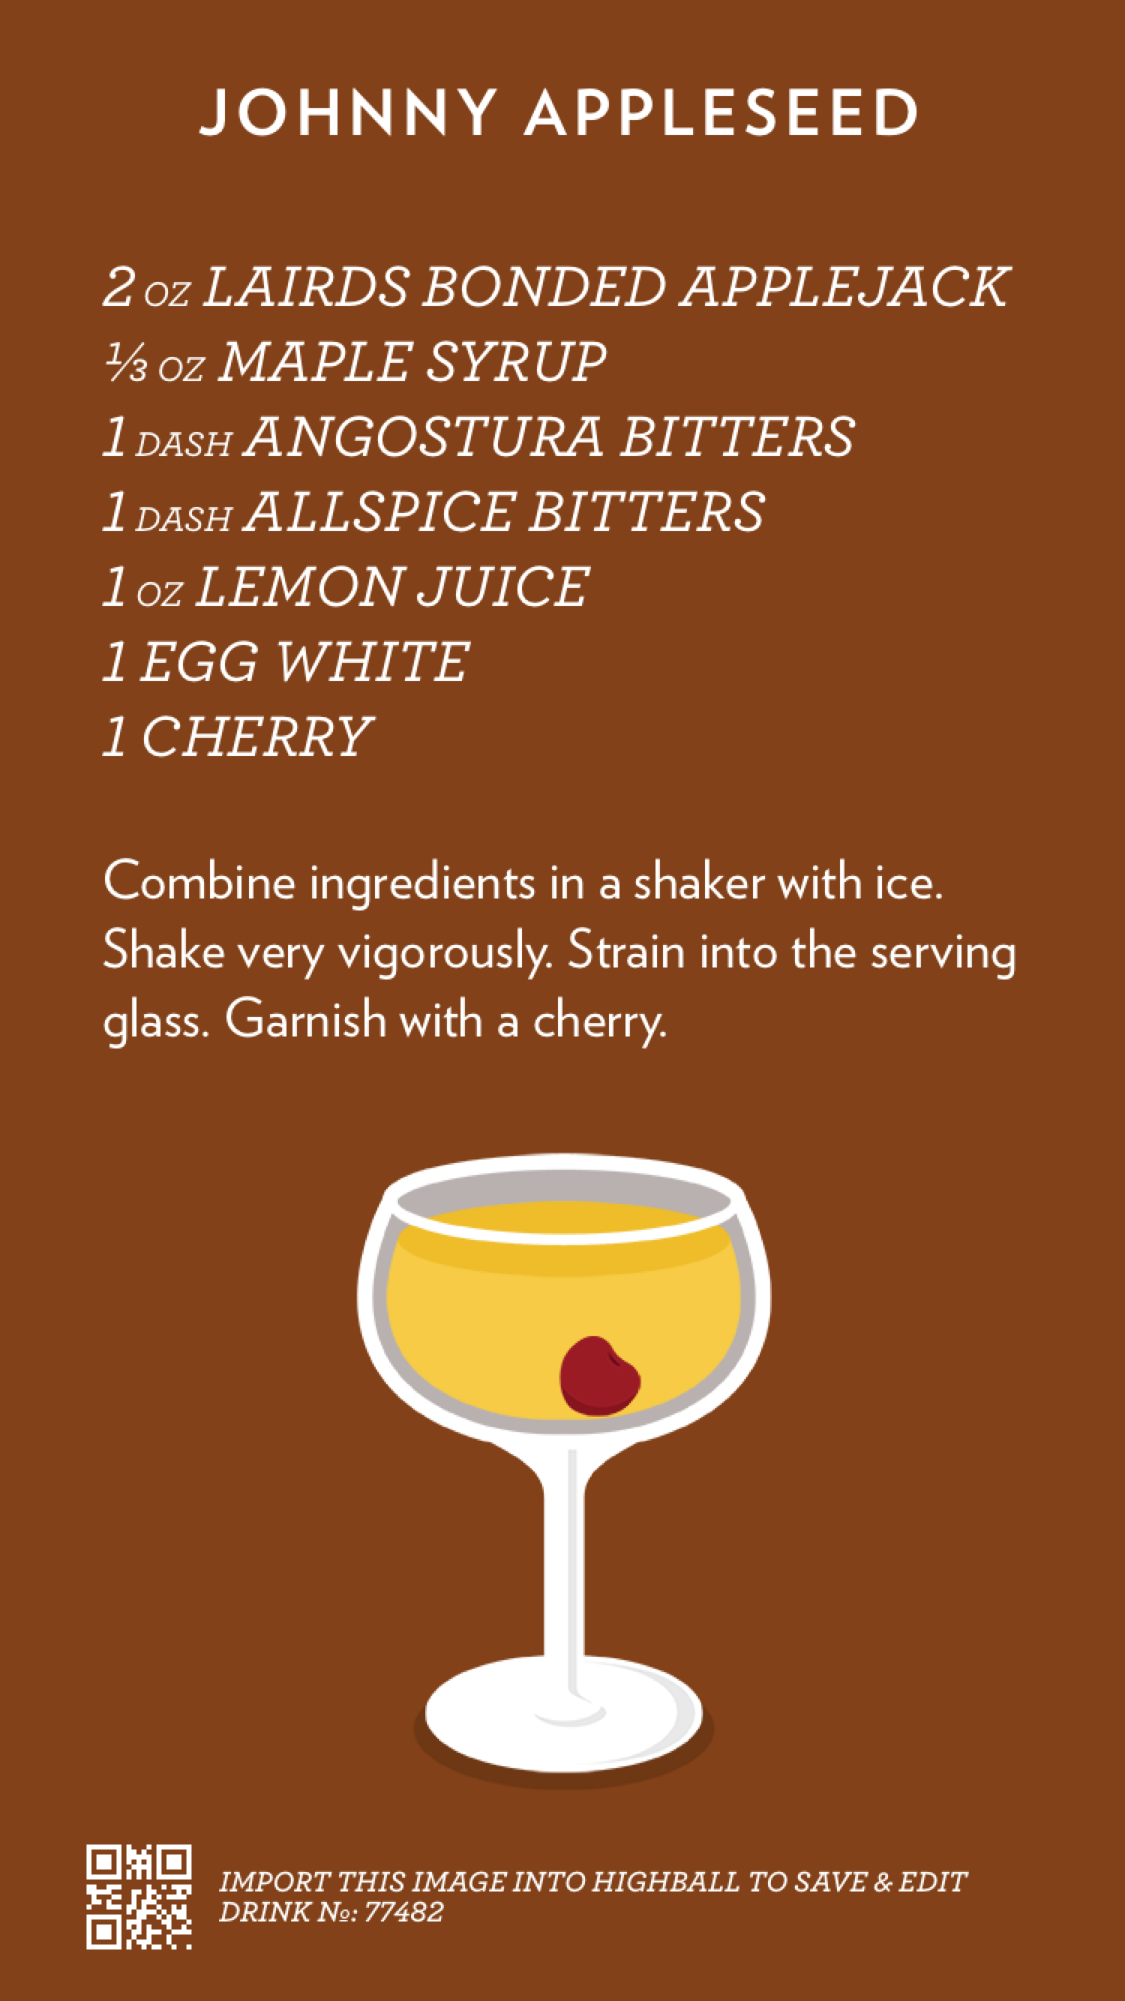 Recipe for Johnny Appleseed